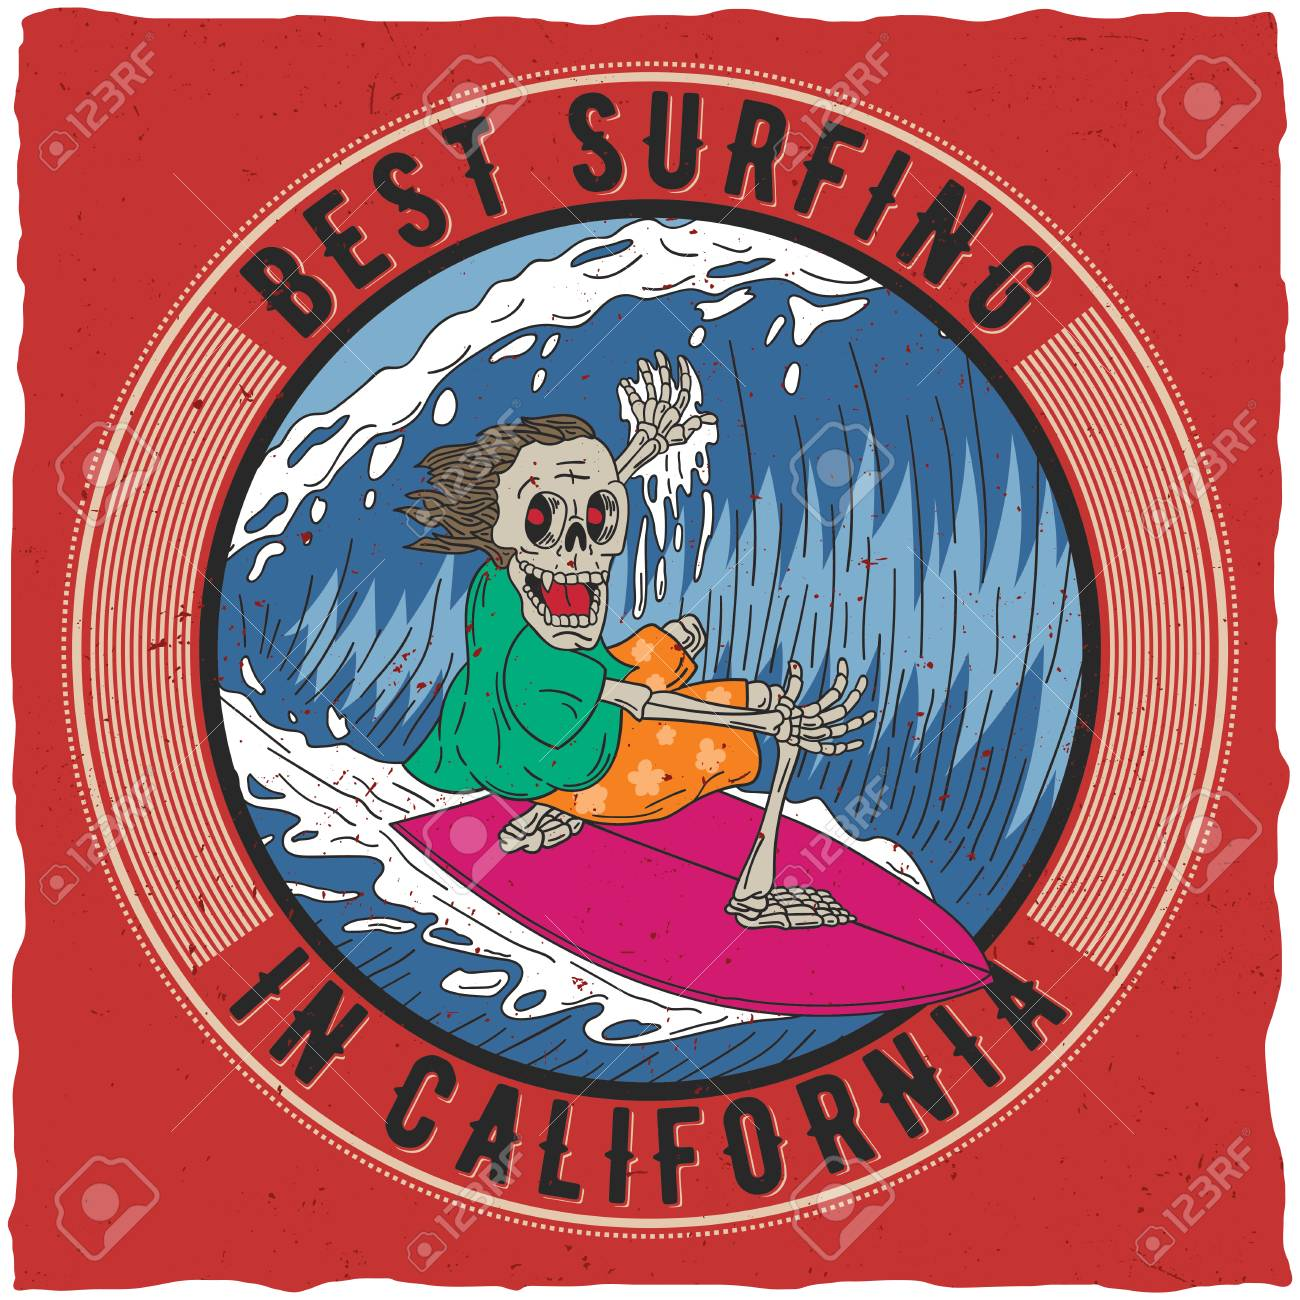 Mejor Surf En Cartel De California Con Esqueleto Divertido A Bordo ...